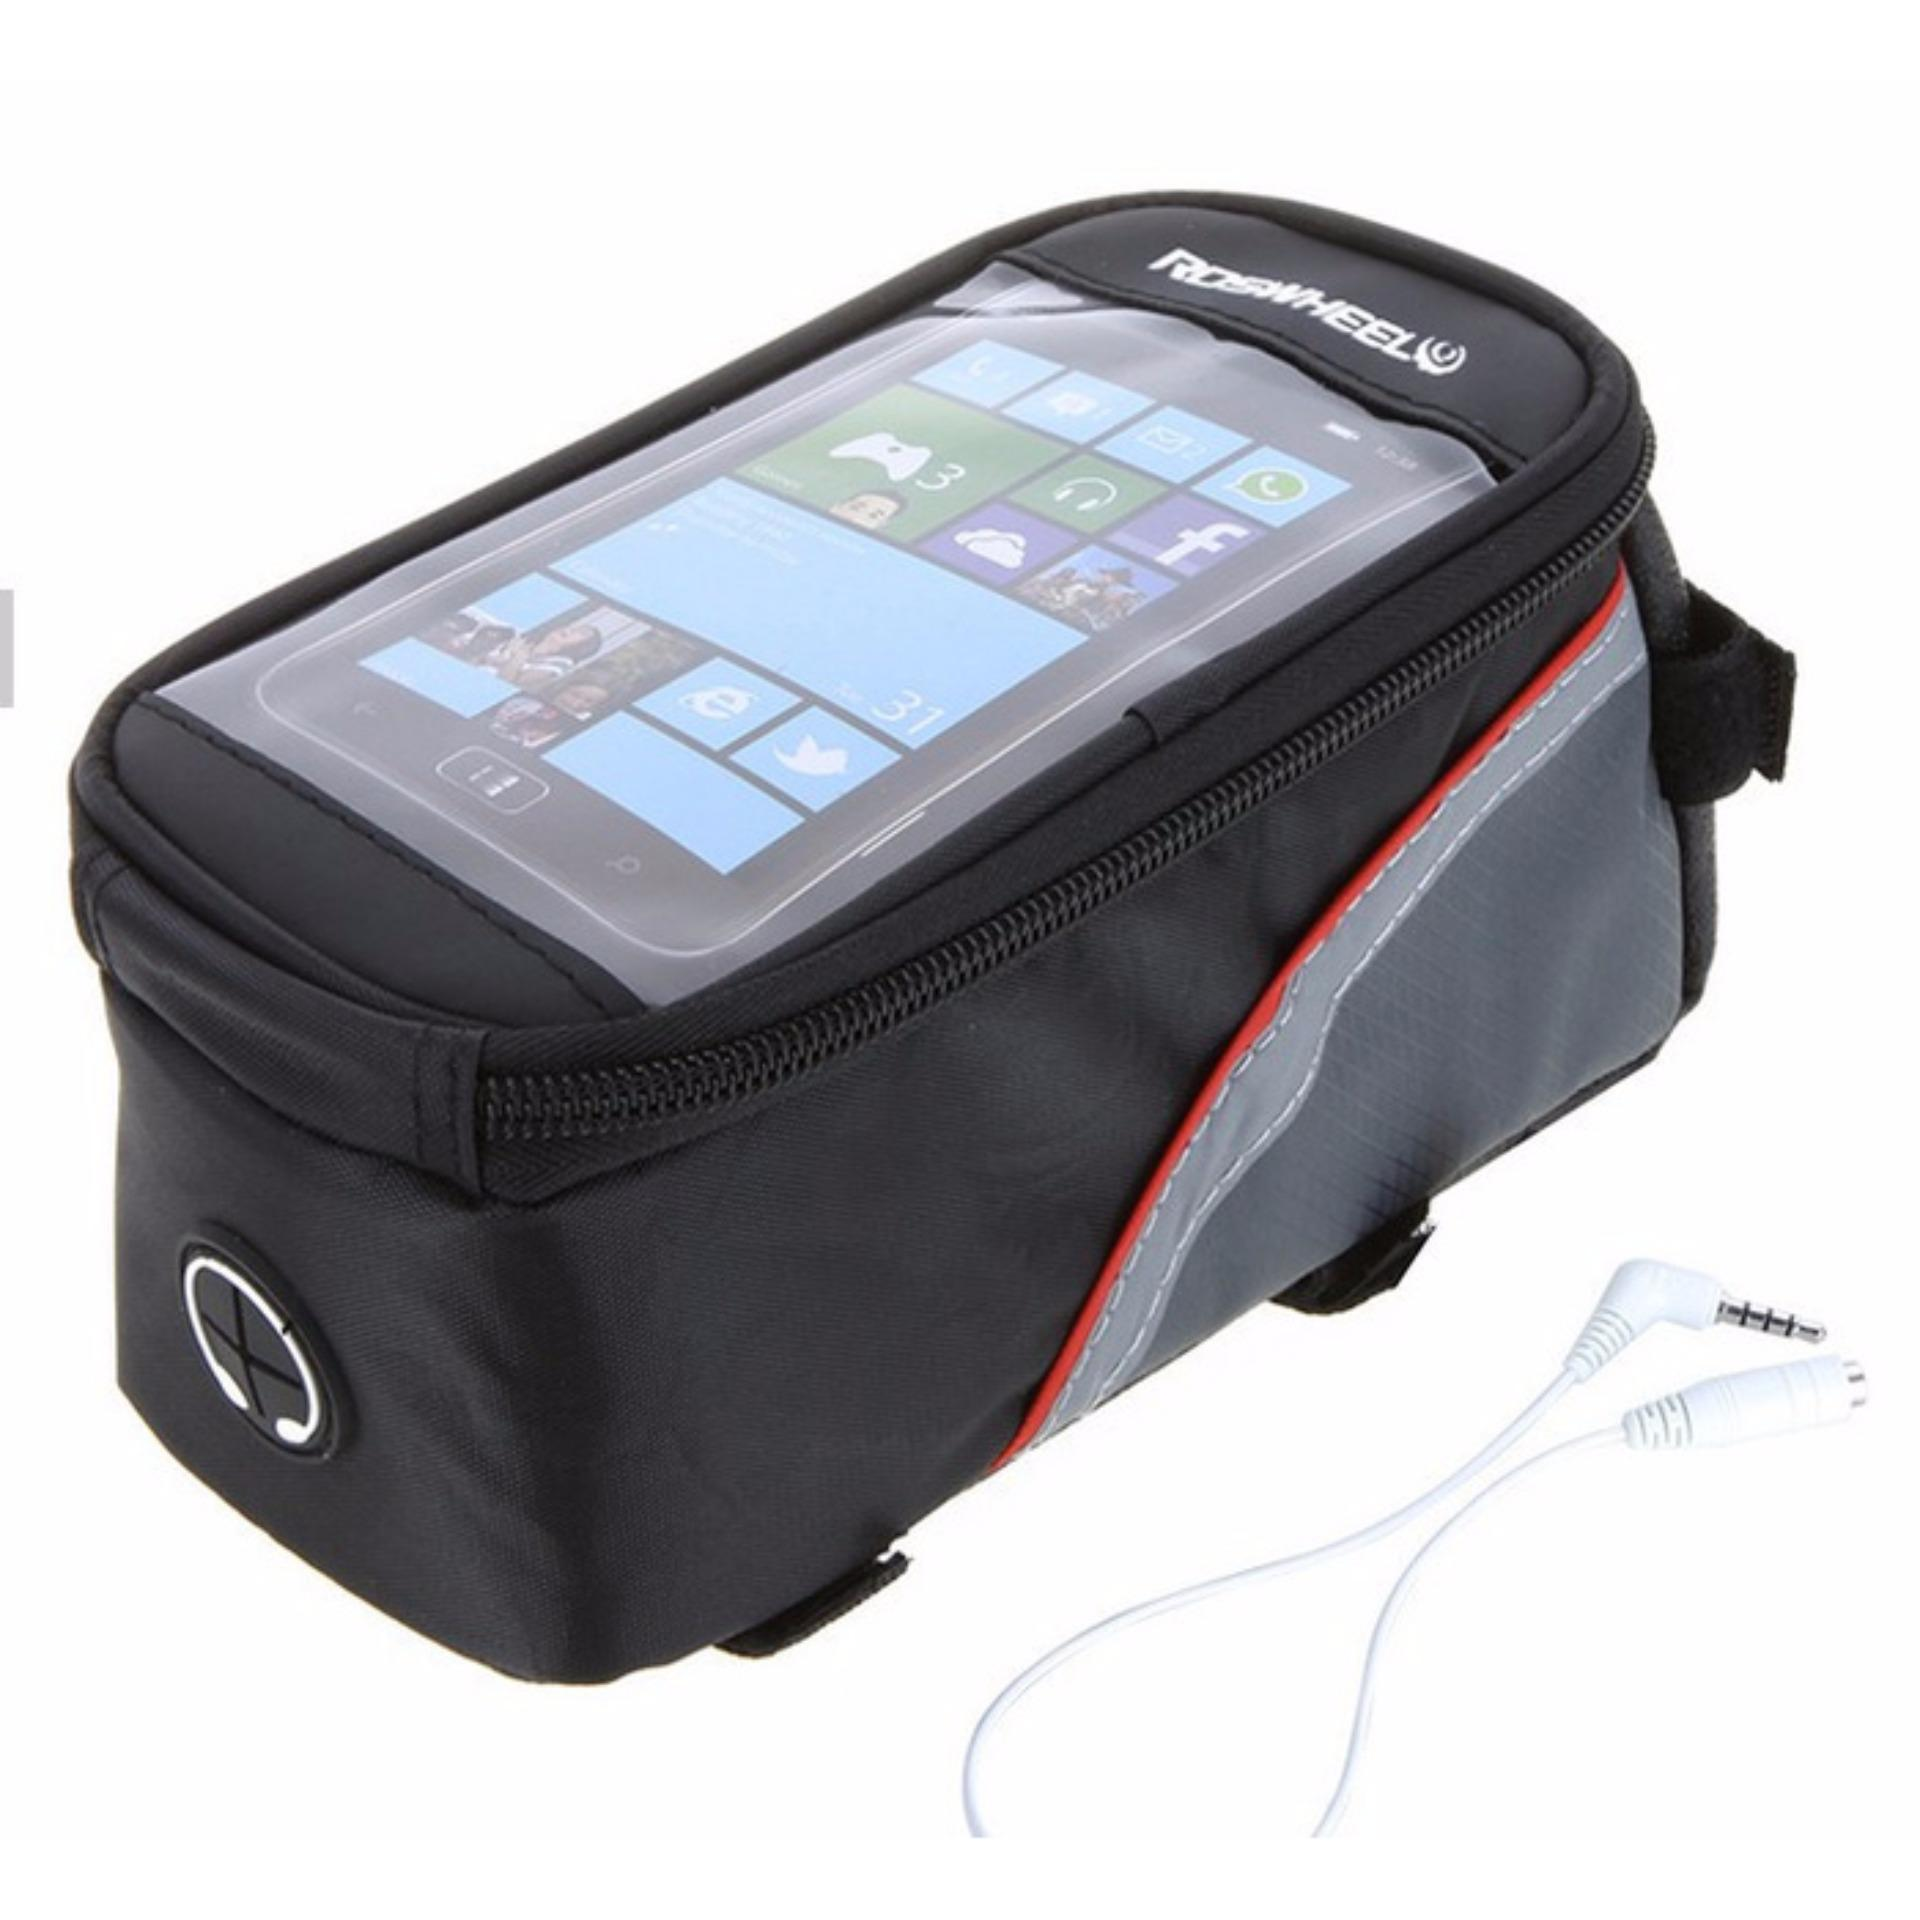 Roshweel Classic Series Bike Waterproof Bag 5.5 inch Smartphone Tas Sepeda Frame Hp Anti Air TouchScreen